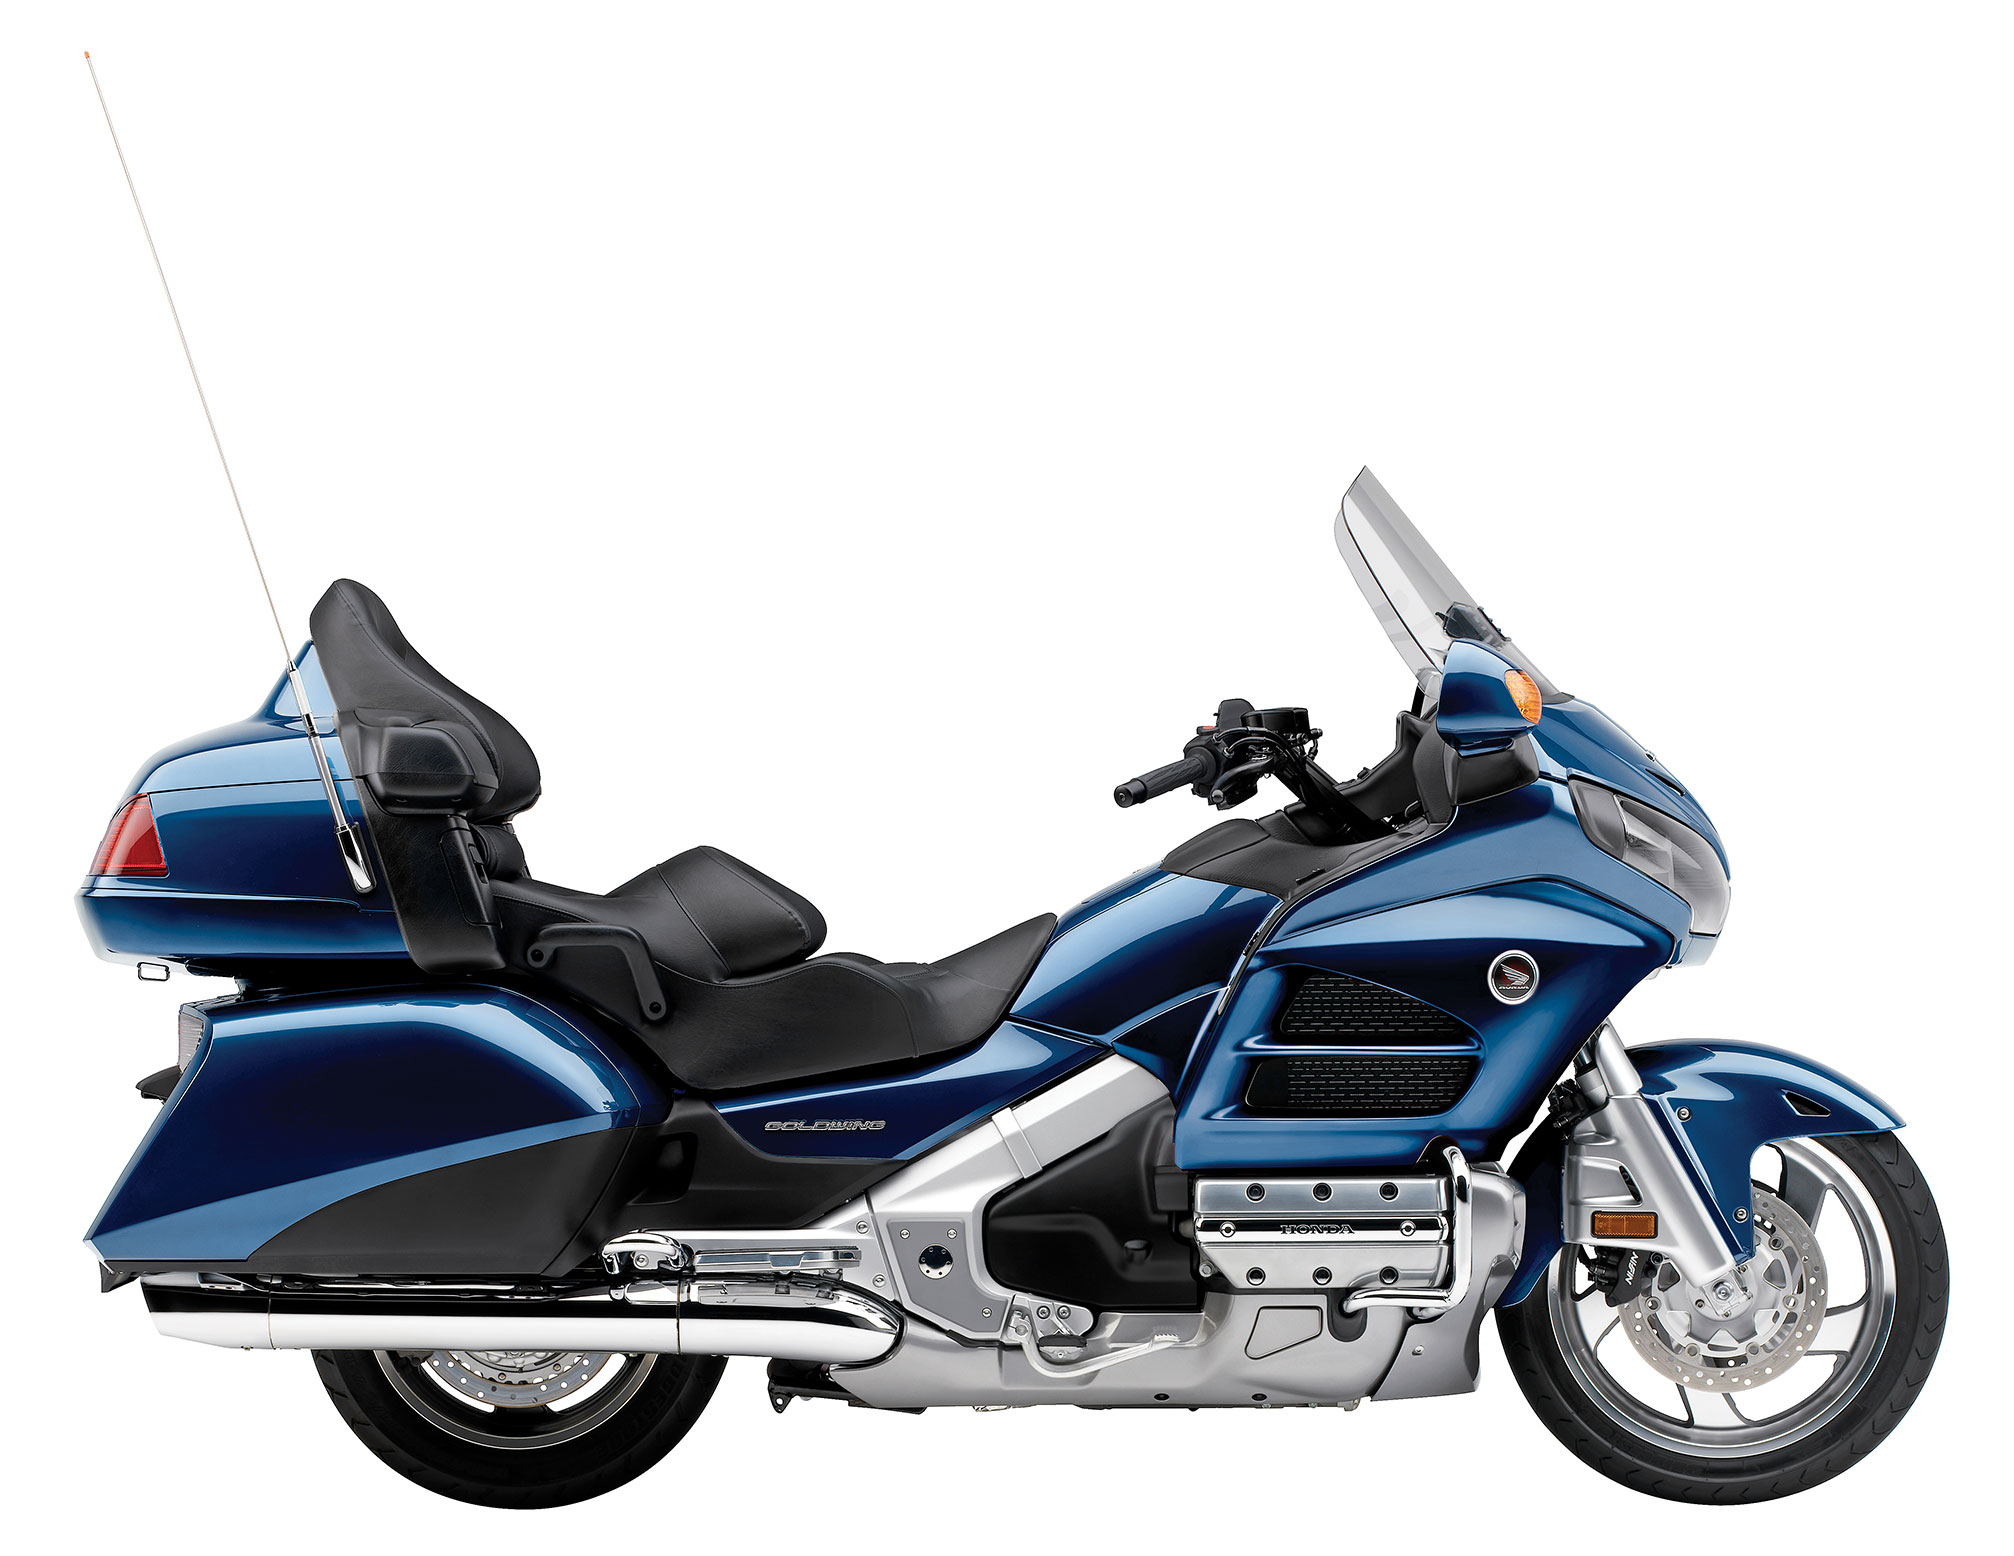 2014 honda gold wing gl1800 audio comfort navi xm review rh totalmotorcycle com 2015 goldwing owners manual download free 2012 goldwing service manual